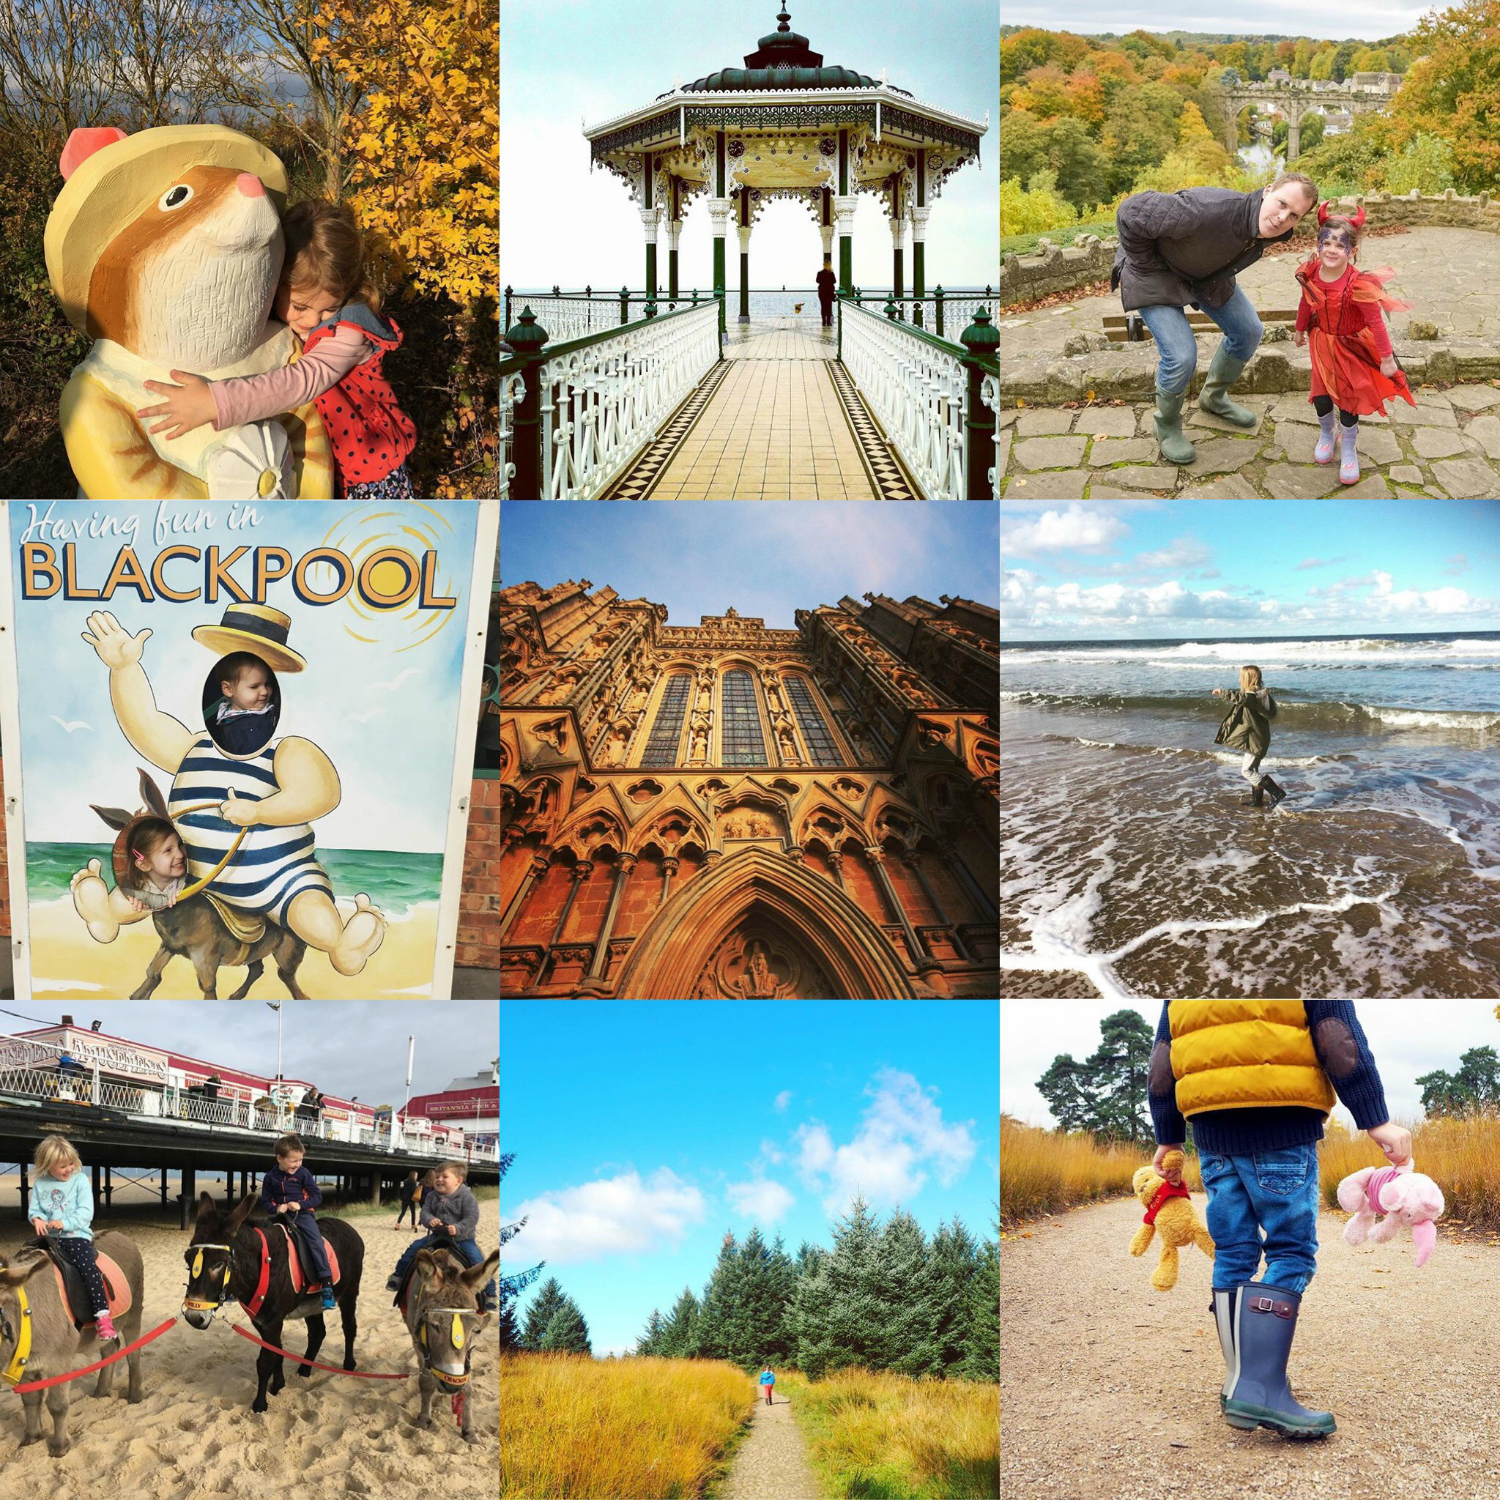 Top L-R:  @hannahisoutside   @brum_bites   @candidlyrhubarb  Middle L-R:  @havekidswilltraveluk   @nicktphotos   @tmkuk  Bottom L-R:  @are_we_nearly_there_yet   @coffeeworksleep   @lifeasourlittlefamily